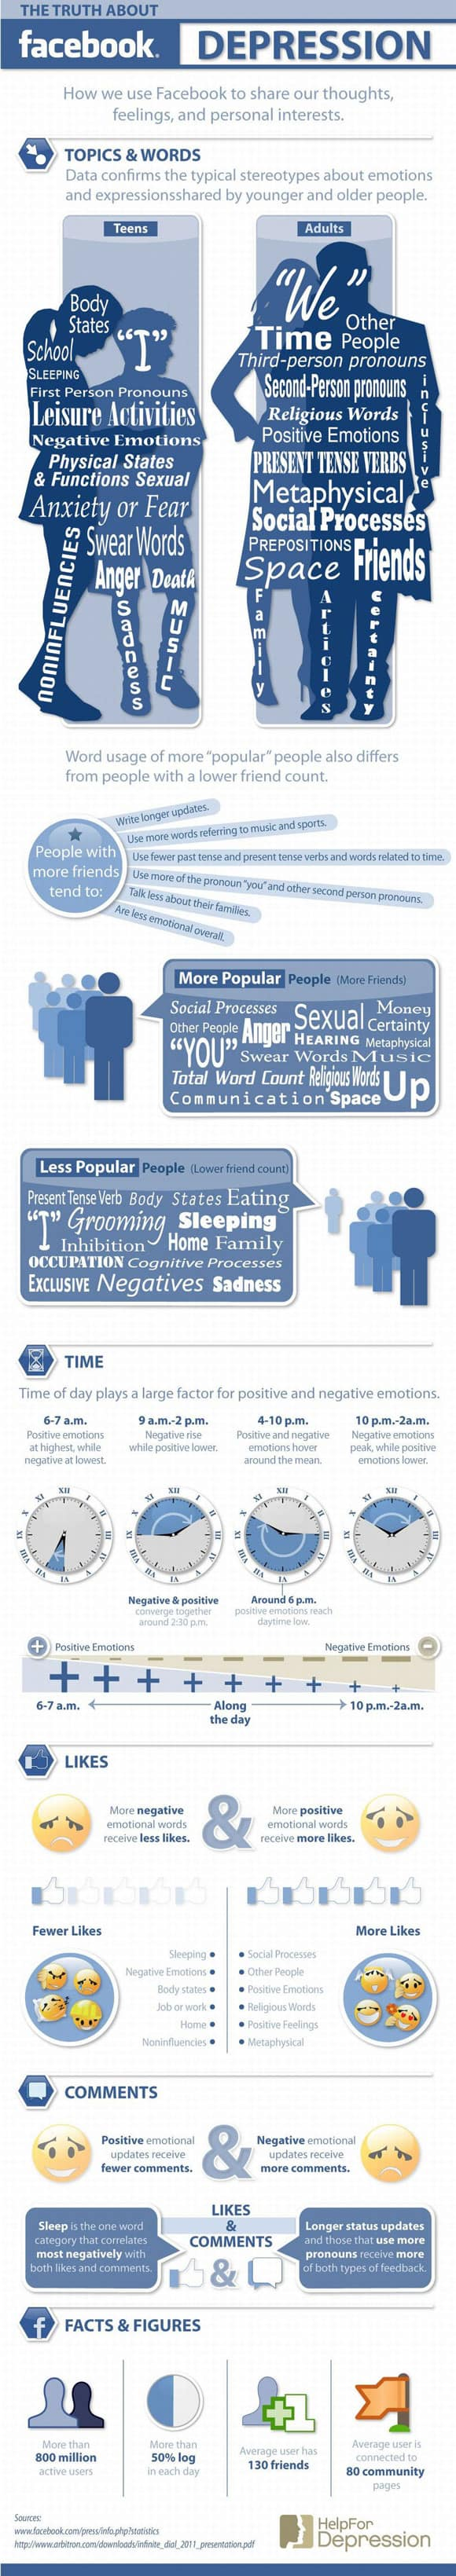 Truth About Facebook Depression Infographic image The Truth About Facebook Depression (Infographic)